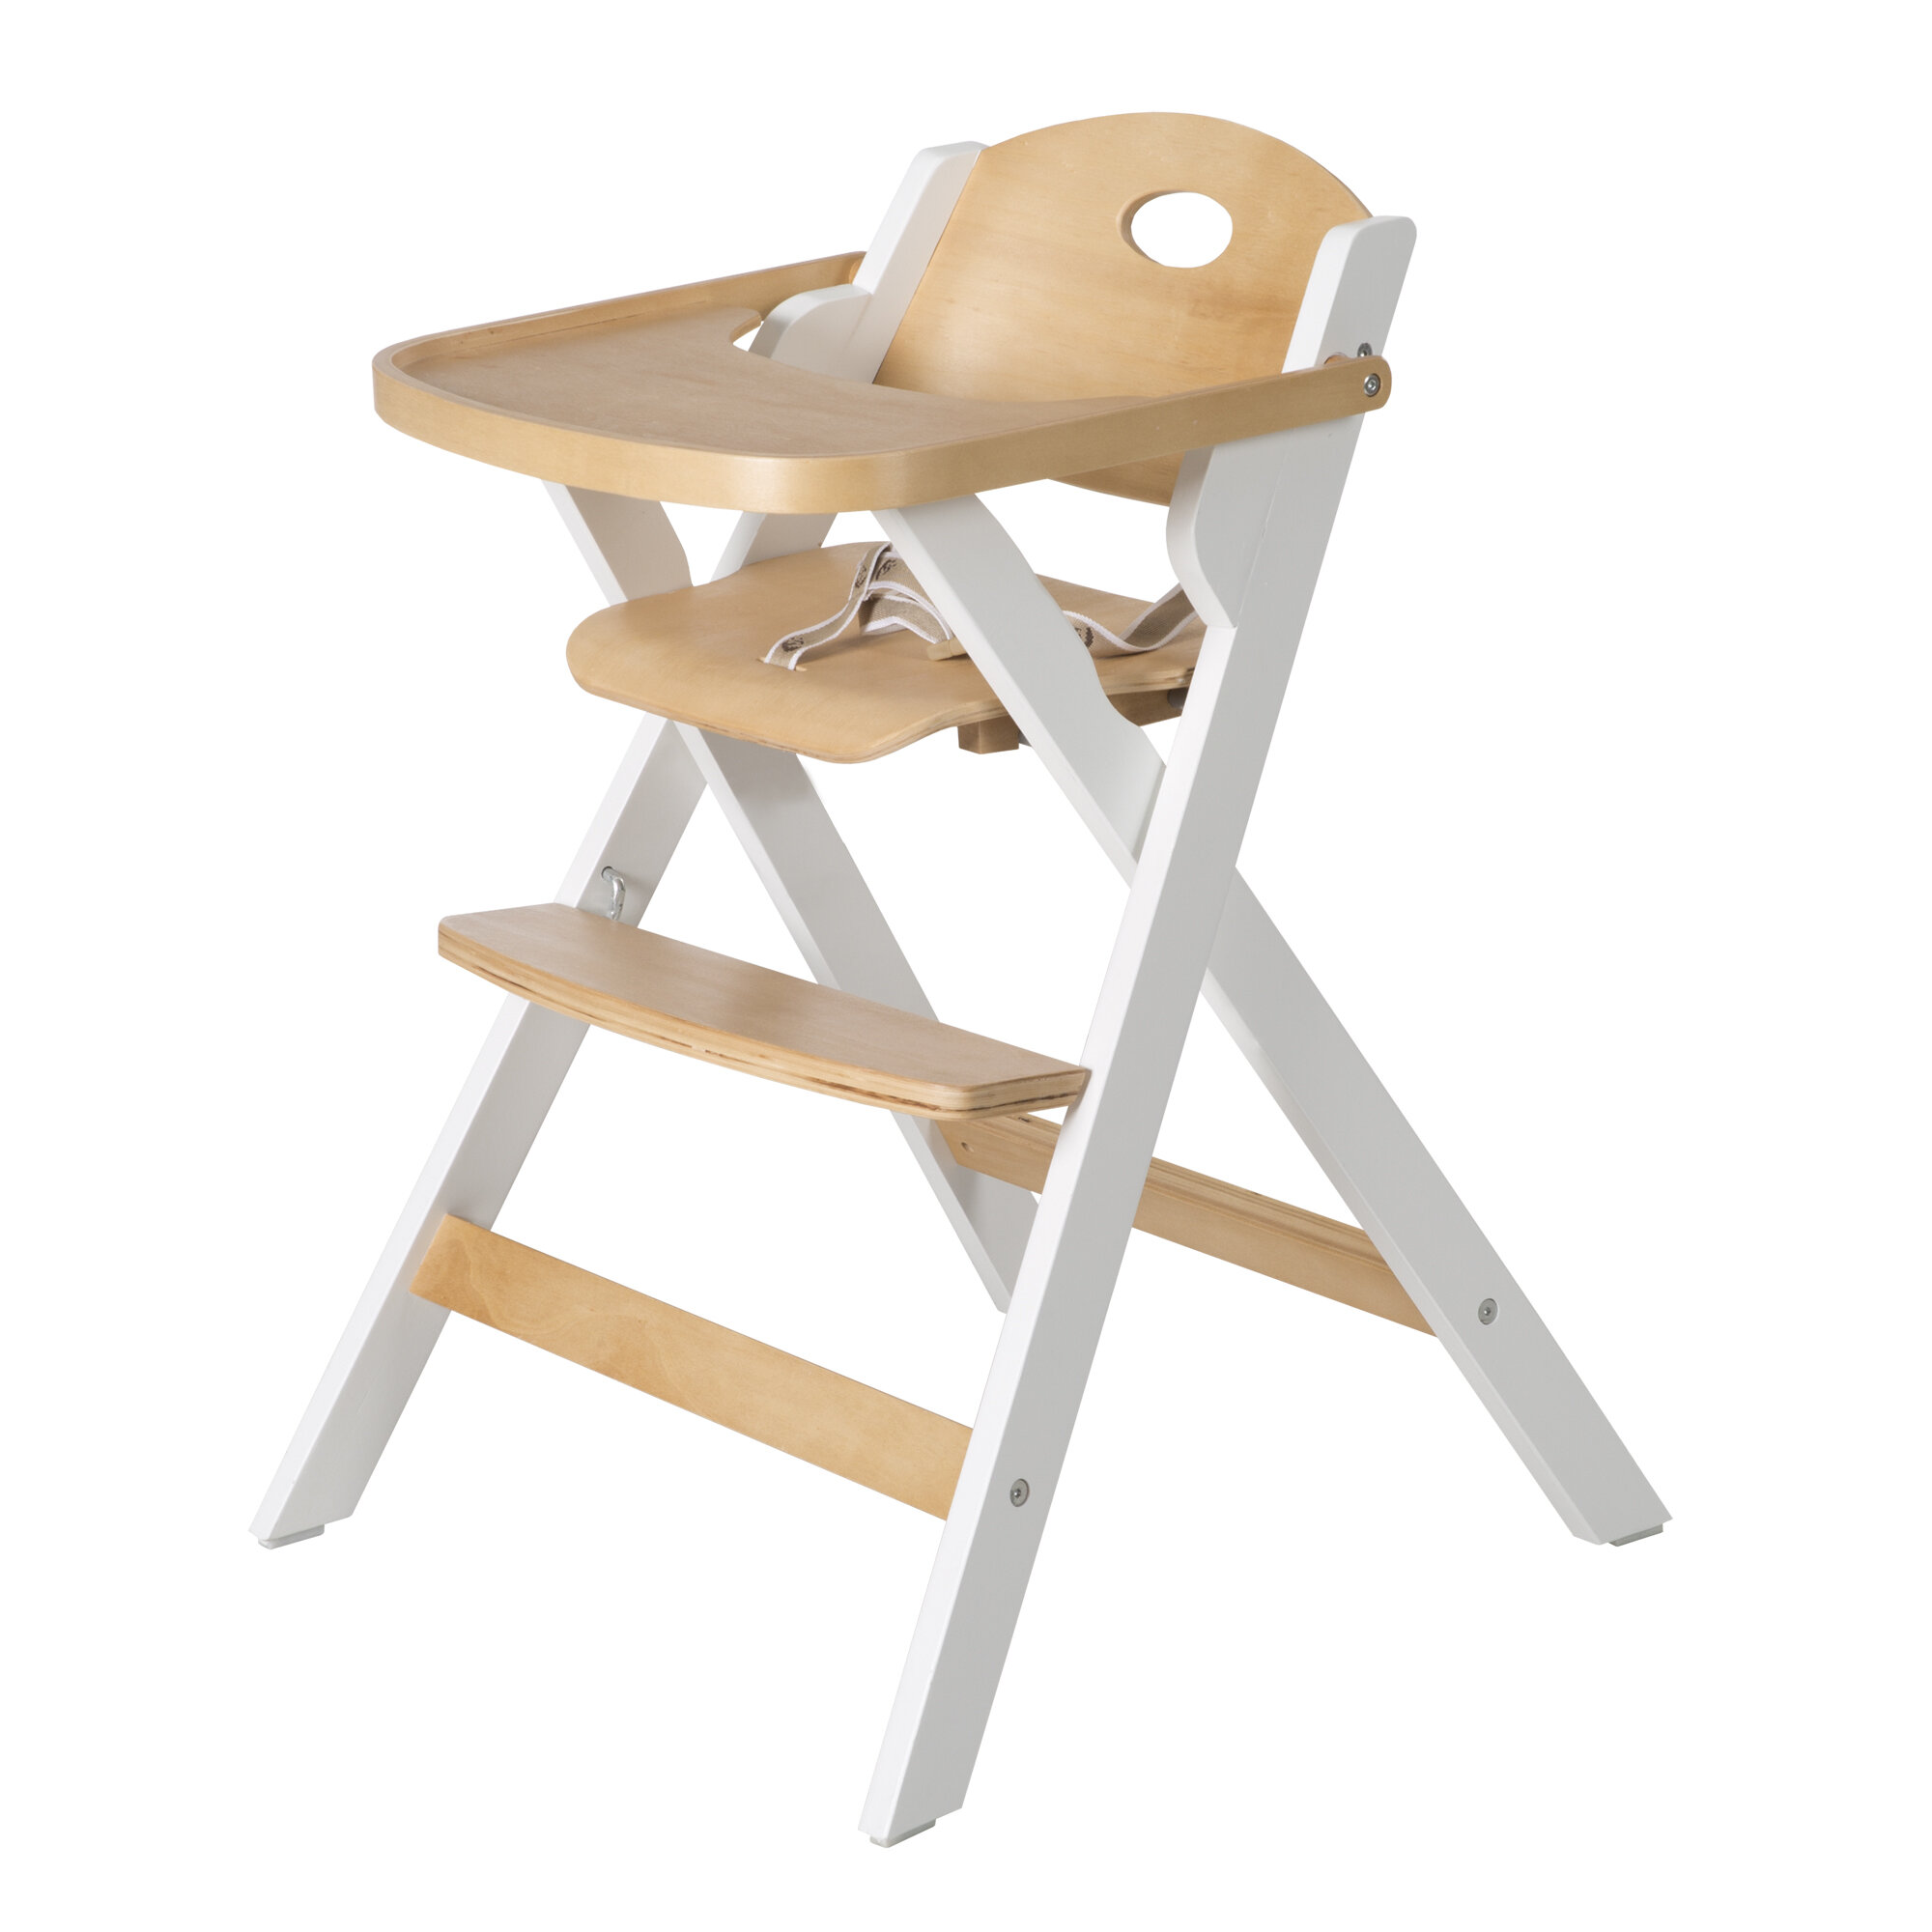 Roba Folding High Chair & Reviews